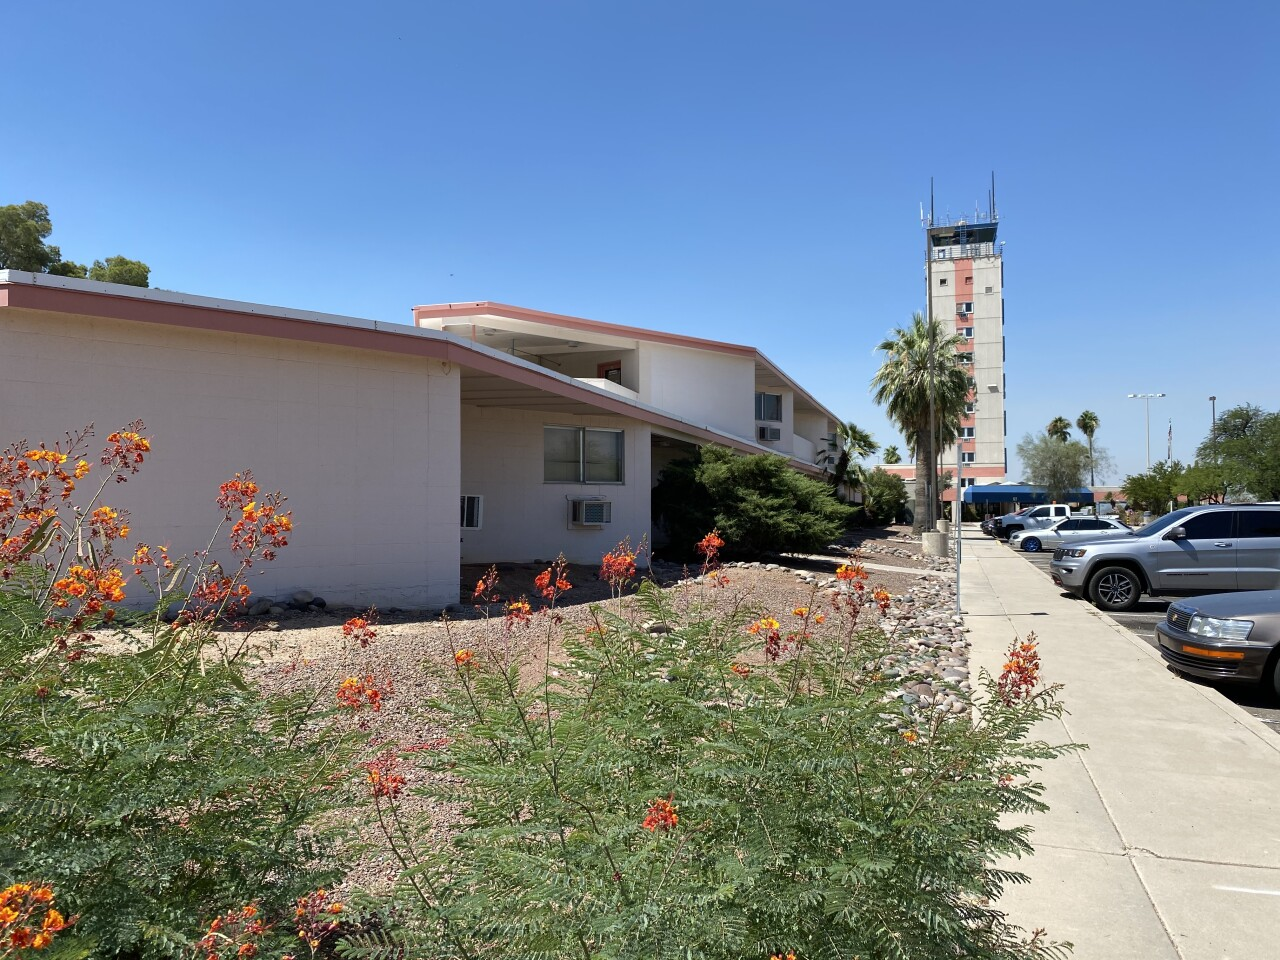 The RONtel is now office space next to the Tucson control tower